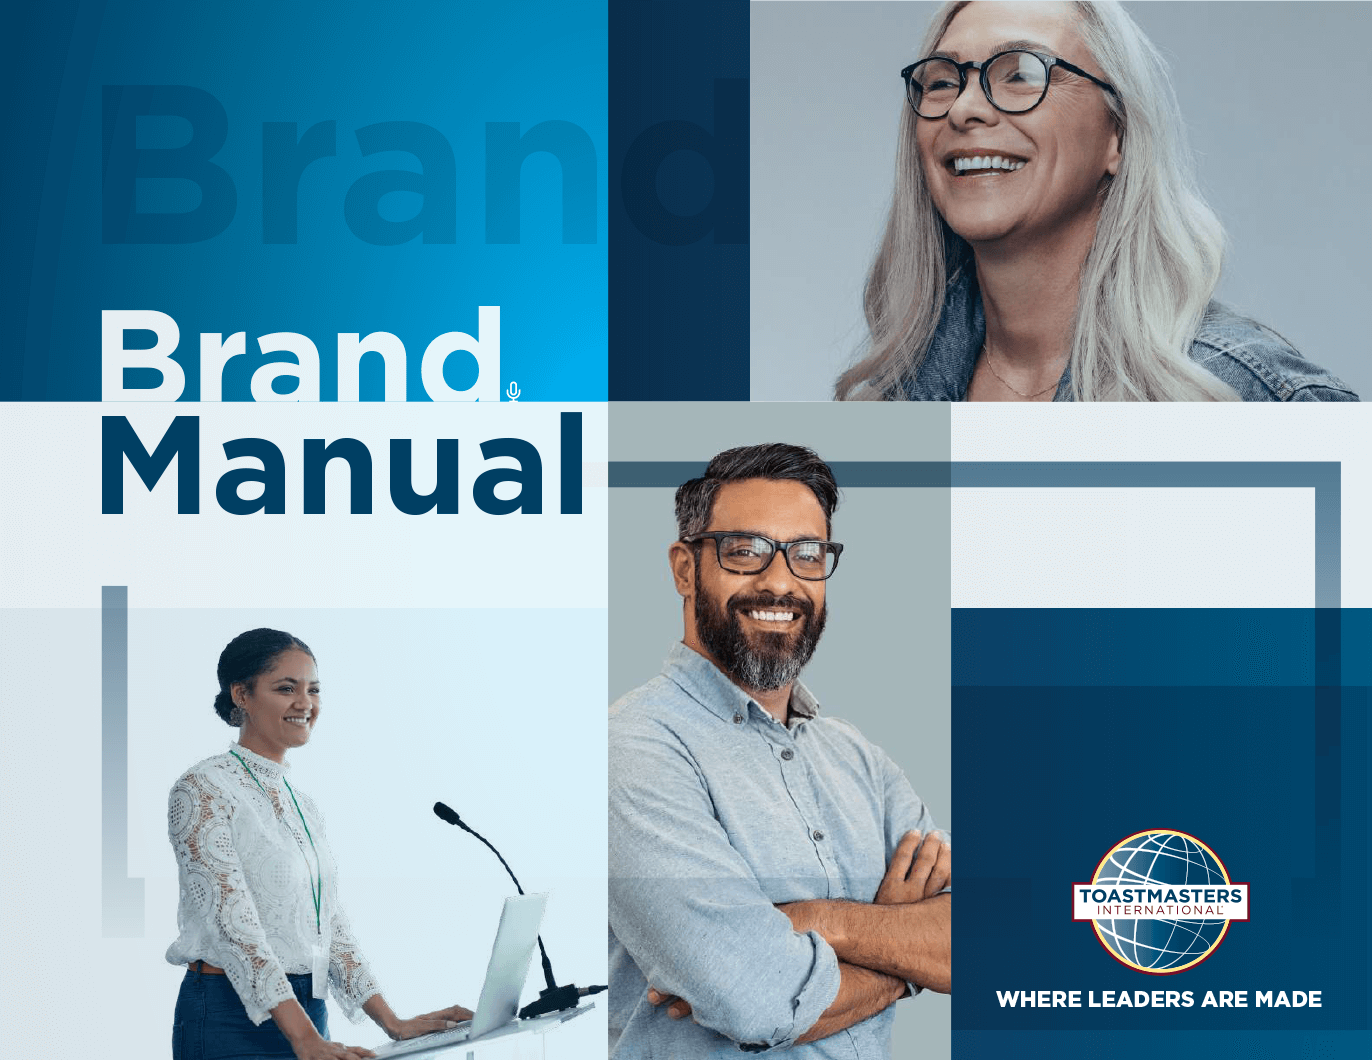 Toastmasters International brand manual cover